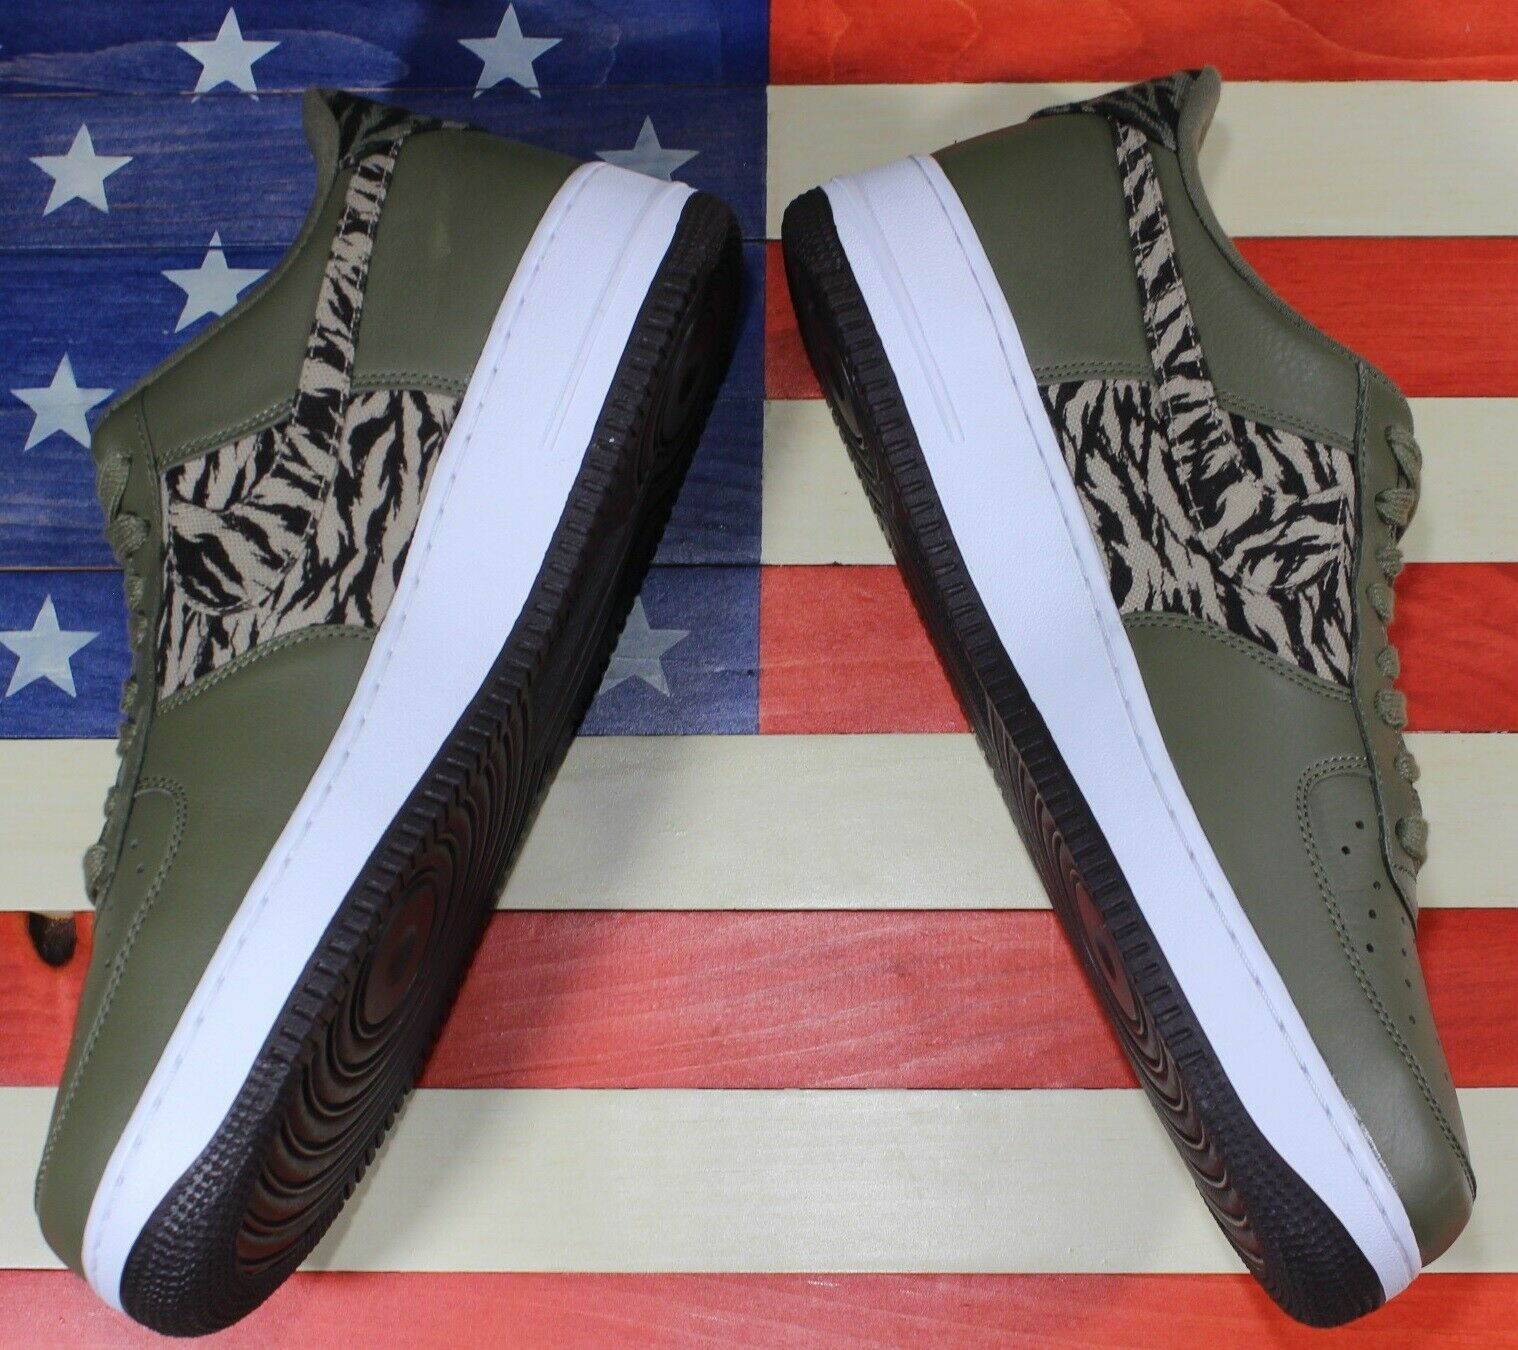 Nike Air Force 1 One Low AOP Basketball Shoes Olive-Green/White [AQ4131-200]- 13 image 8